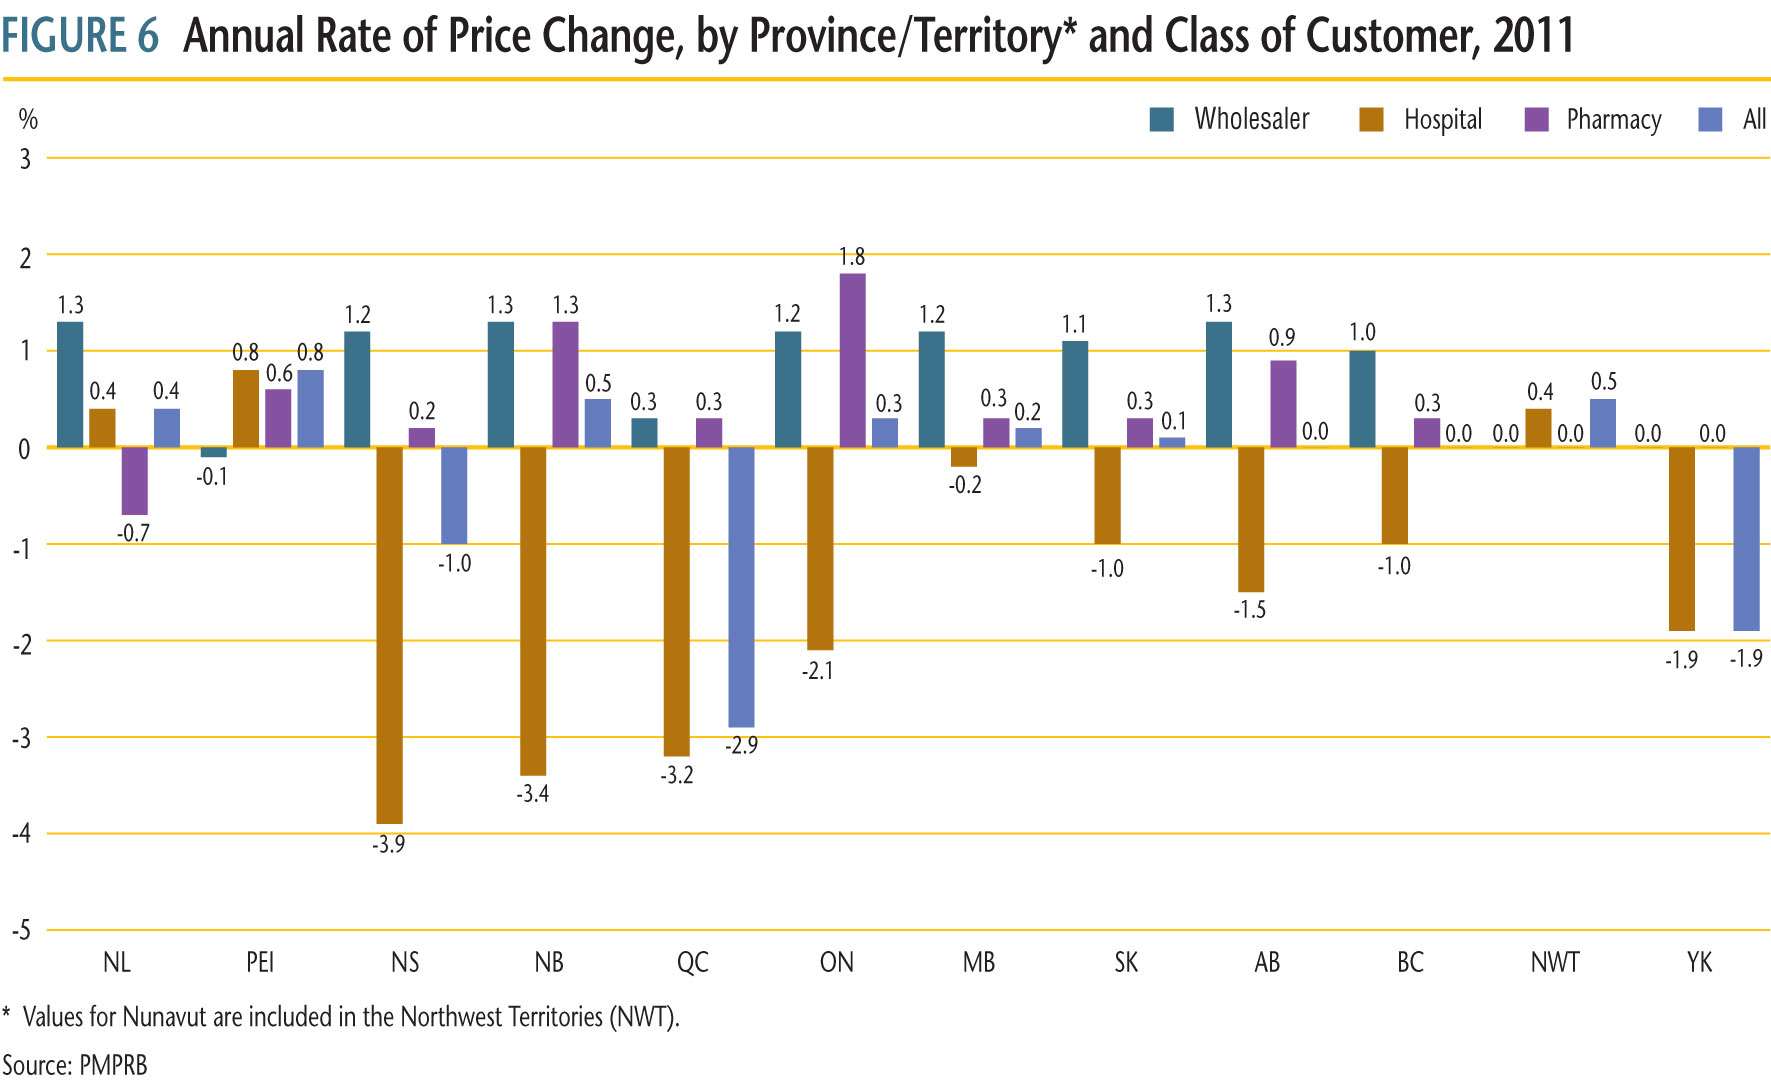 Figure 6 presents average annual rates of price change by province/territory